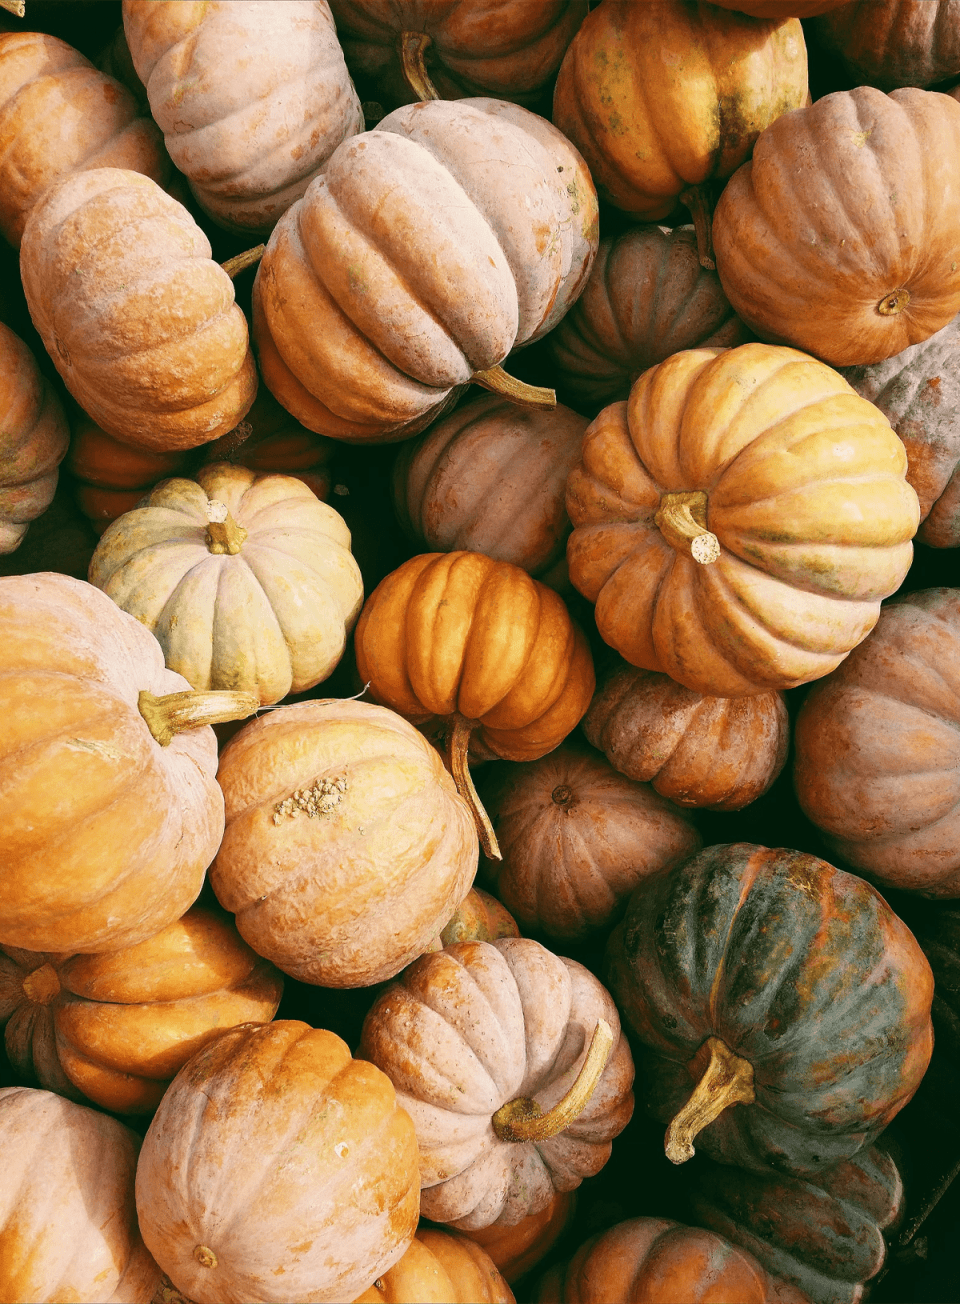 an over photo of a pile of picturesque small pumpkins of all shapes and sizes